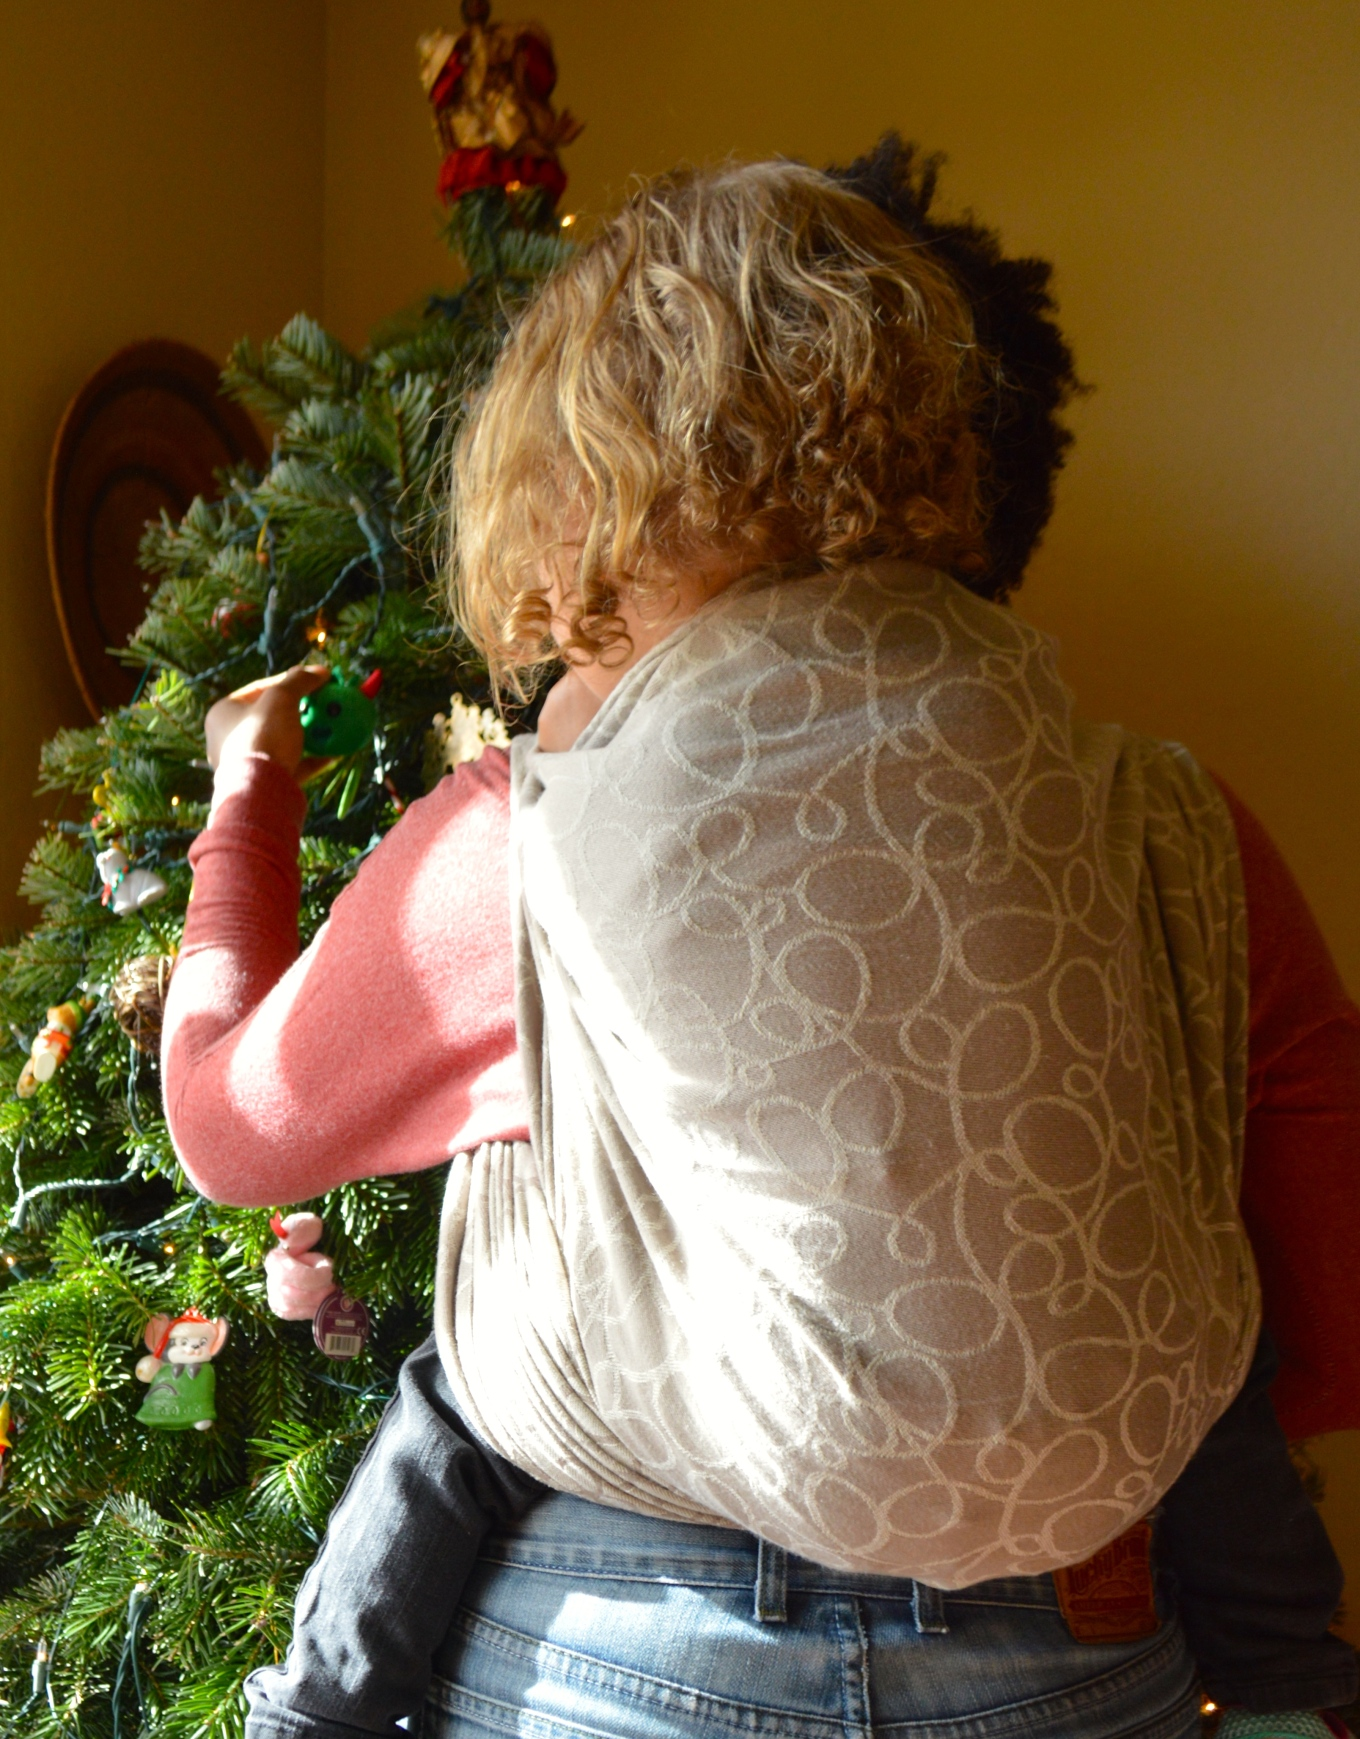 Blonde curly haired toddler is worn on back of medium brown momma in a dark tan wrap with light tan swirls. They are hanging ornaments on the Christmas Tree